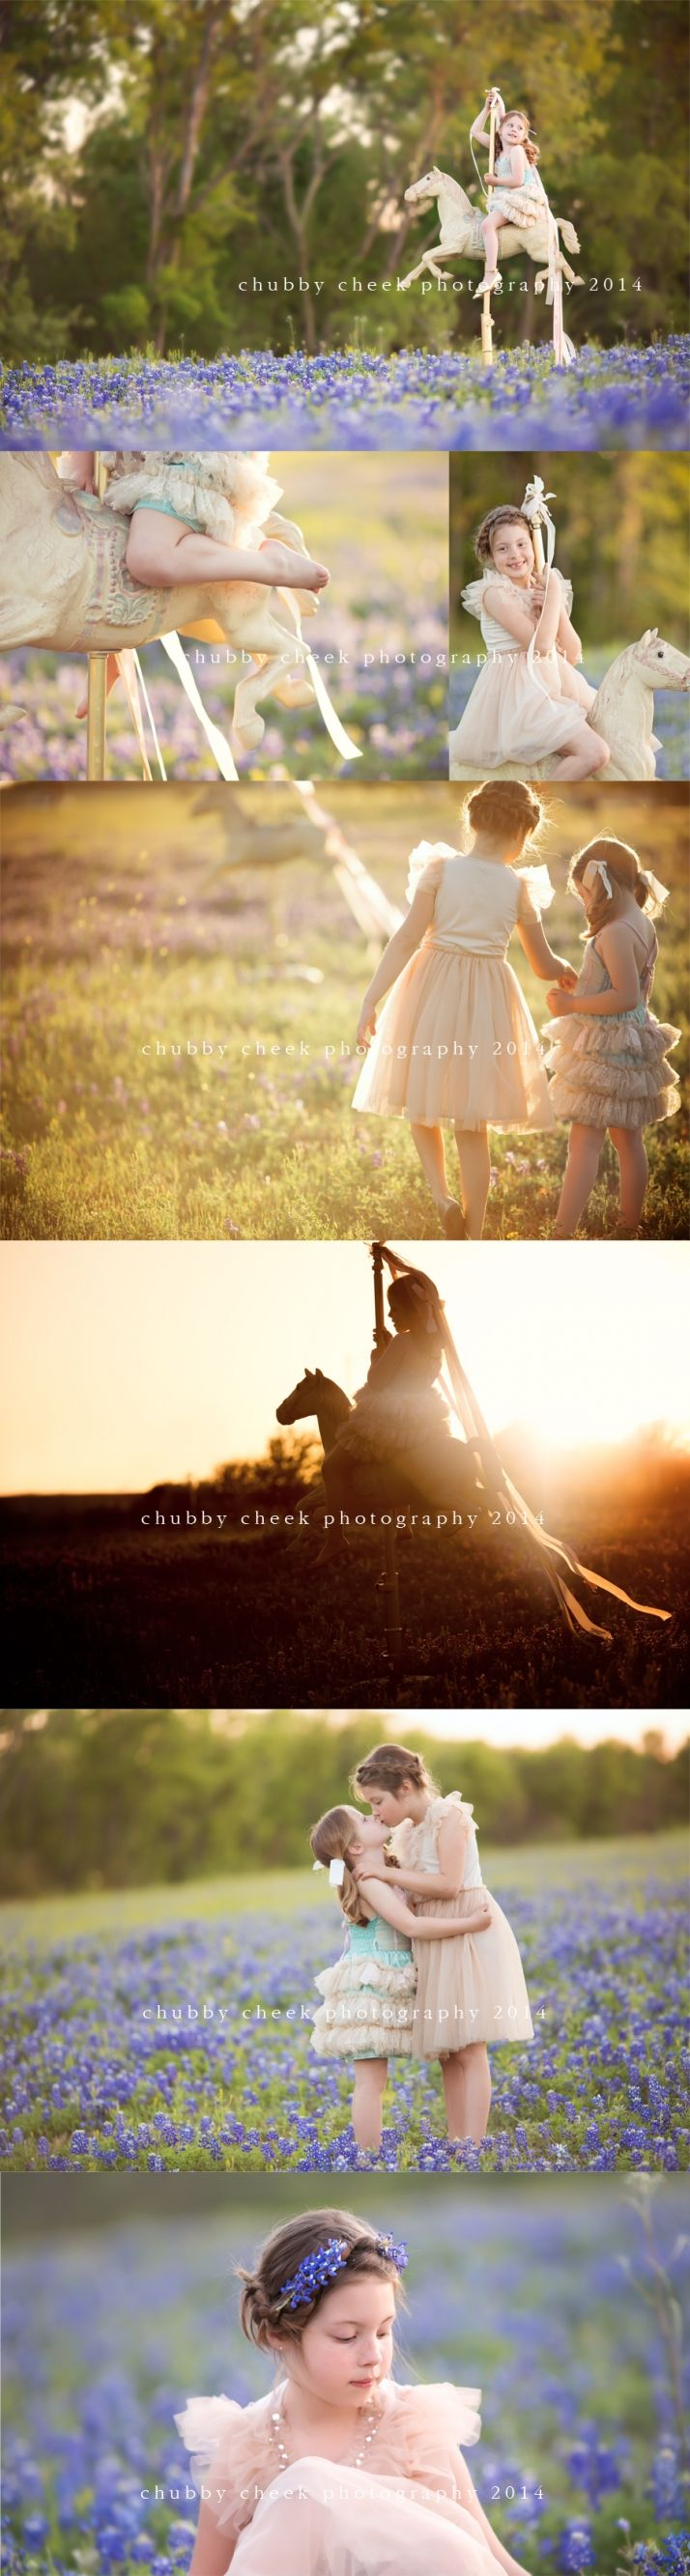 chubby cheek photography child sister photography outdoors horse prop